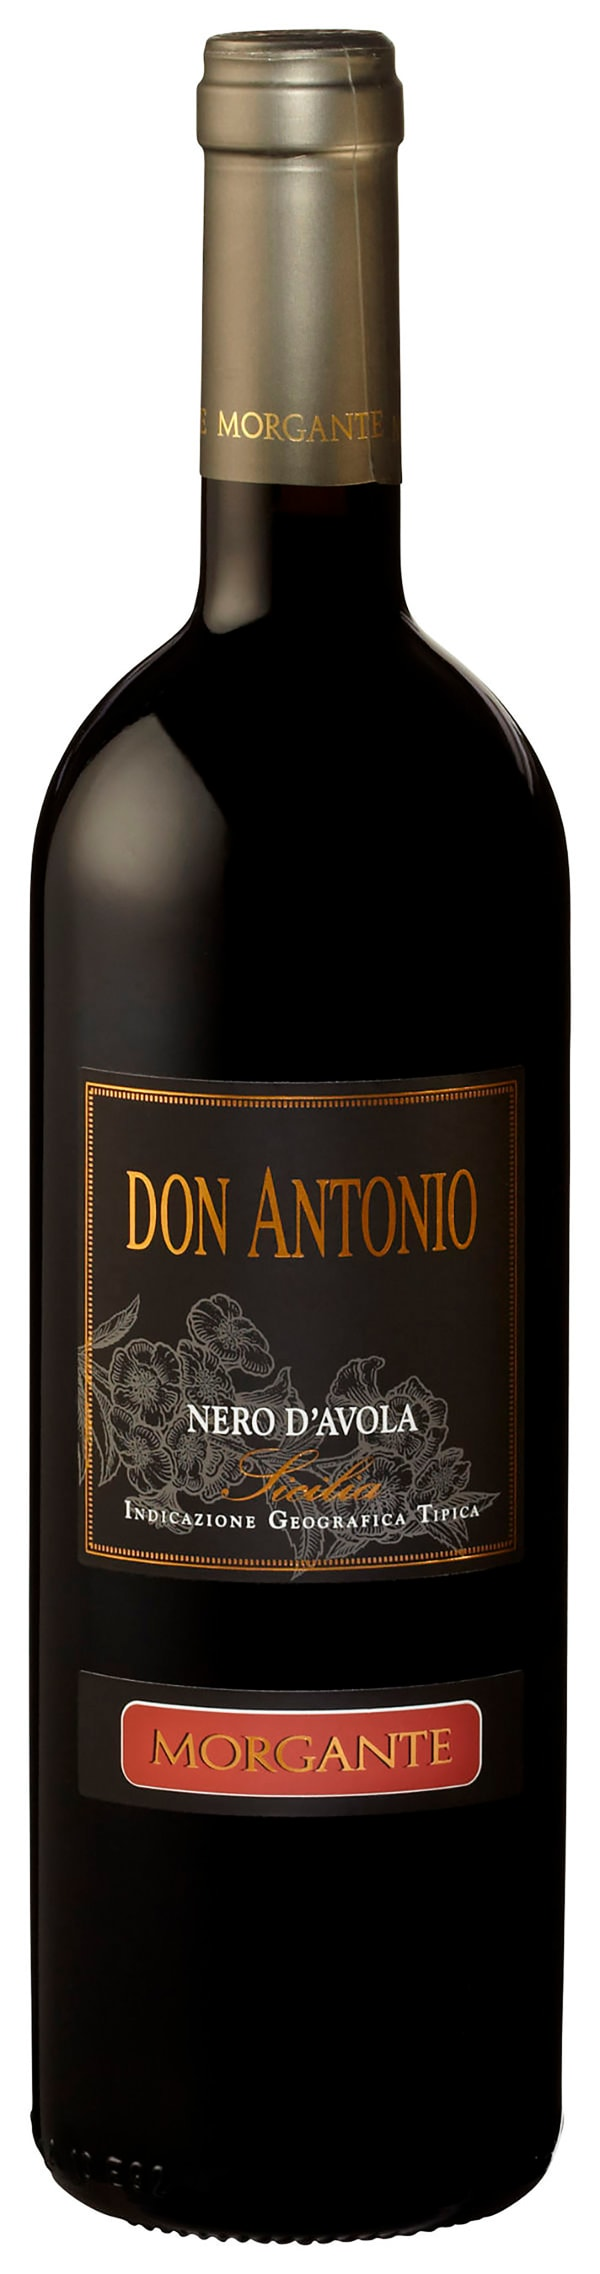 Morgante Don Antonio Nero d'Avola 2004